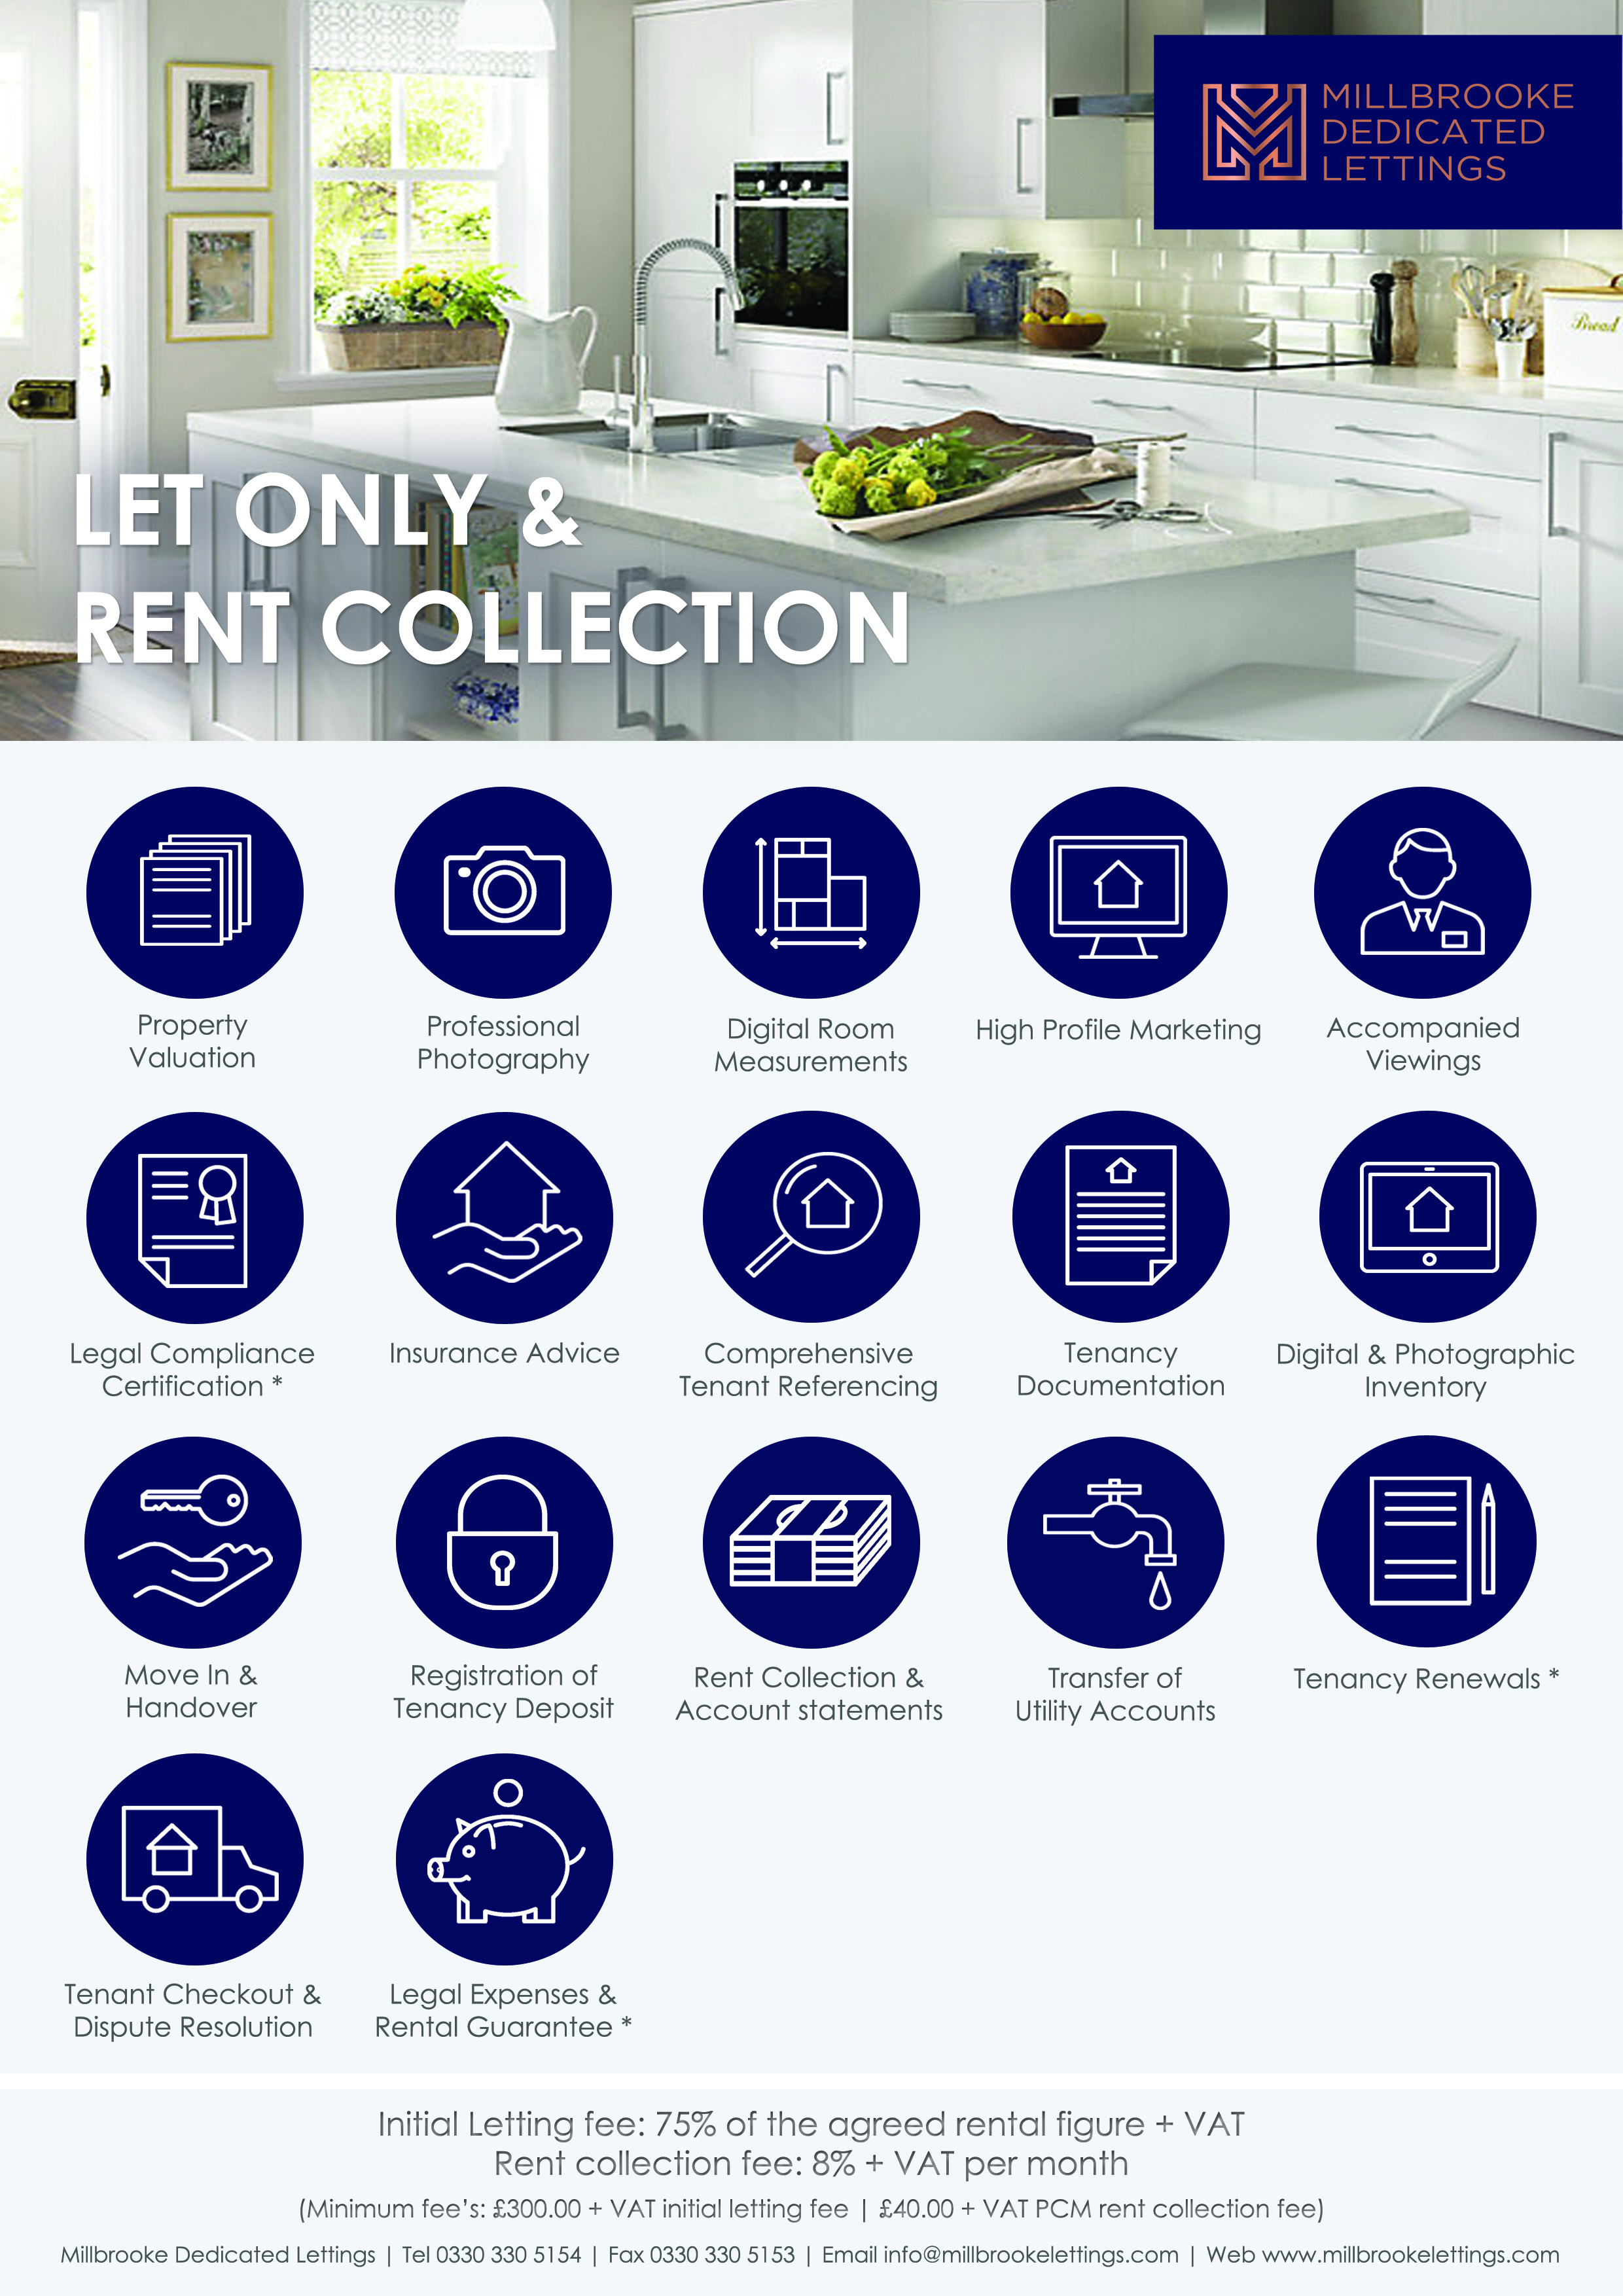 Let Only & Rent Collection Service Card.jpg